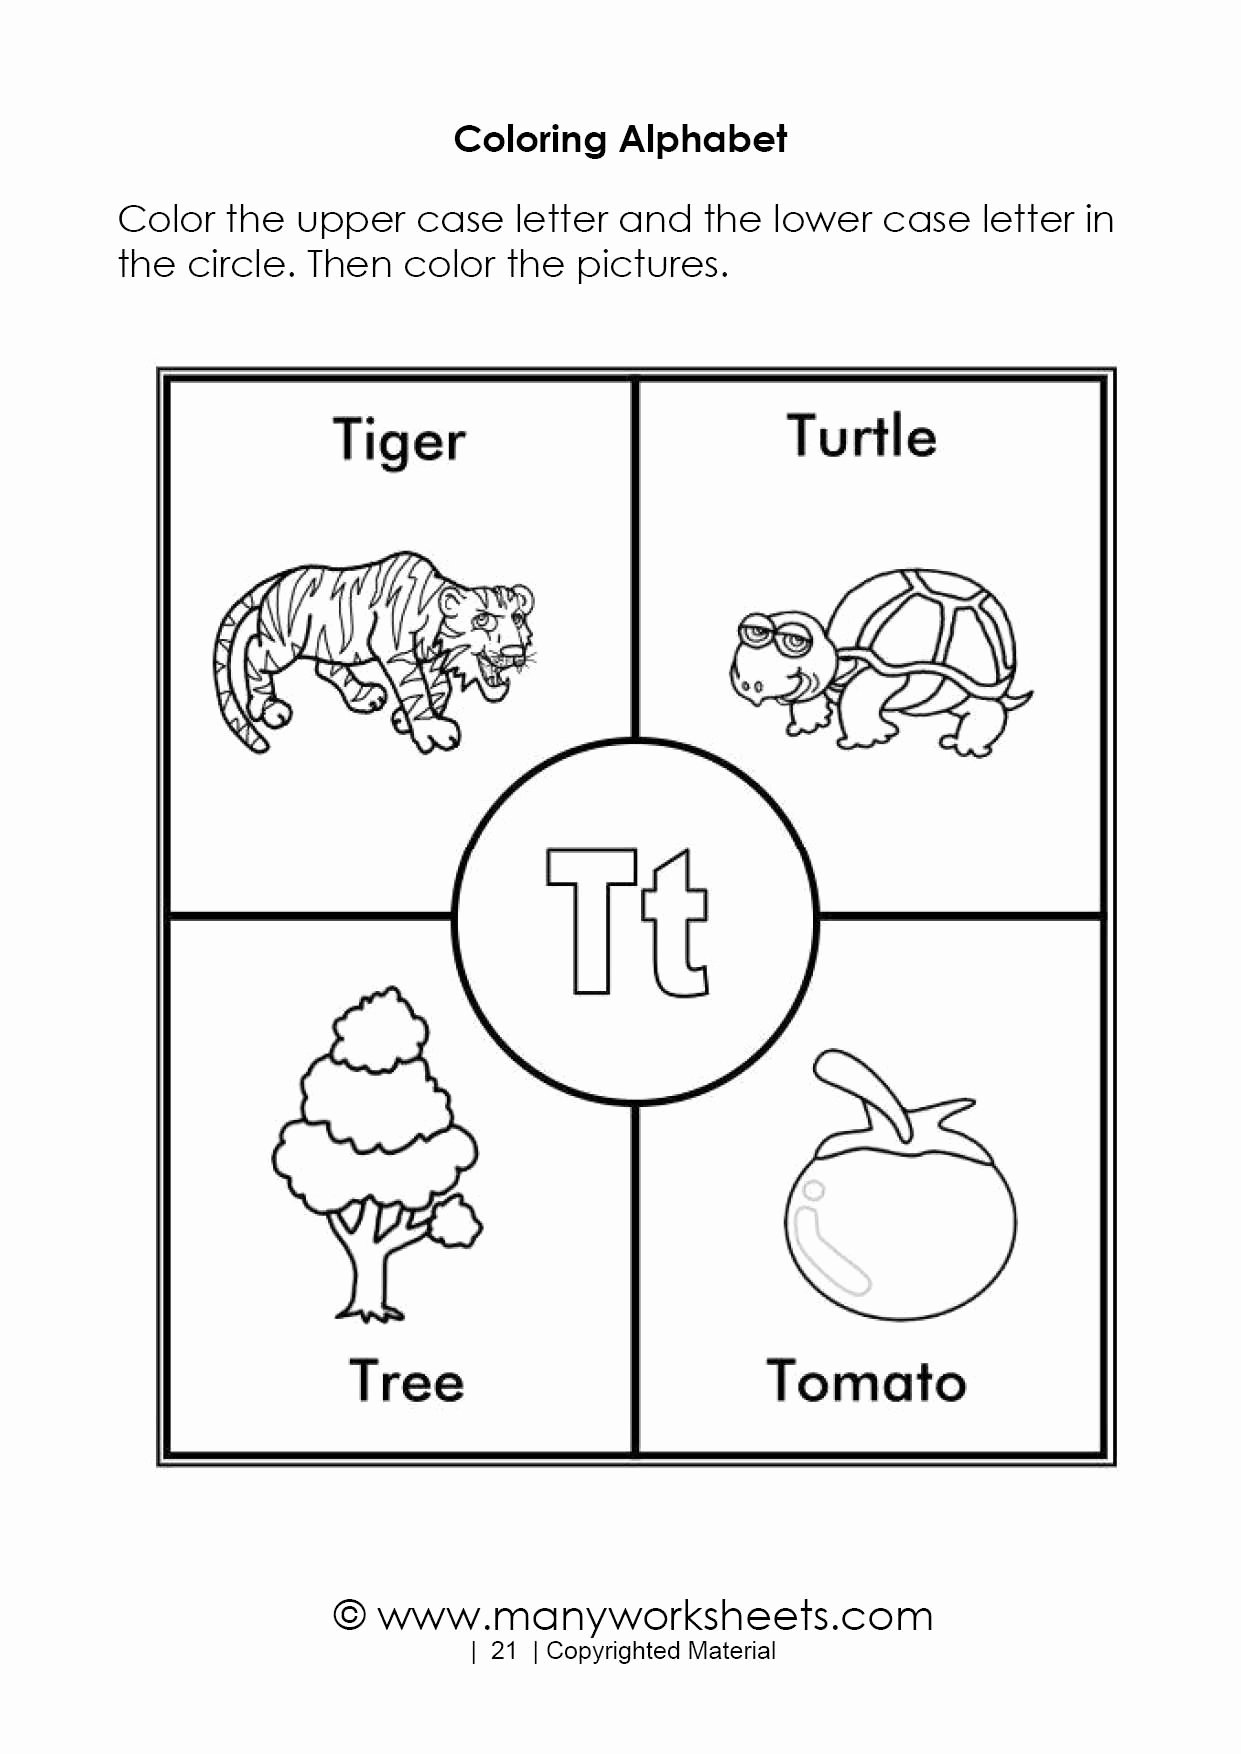 Letter A Coloring Worksheets for Preschoolers Fresh Alphabet Coloring Pages – Letter T